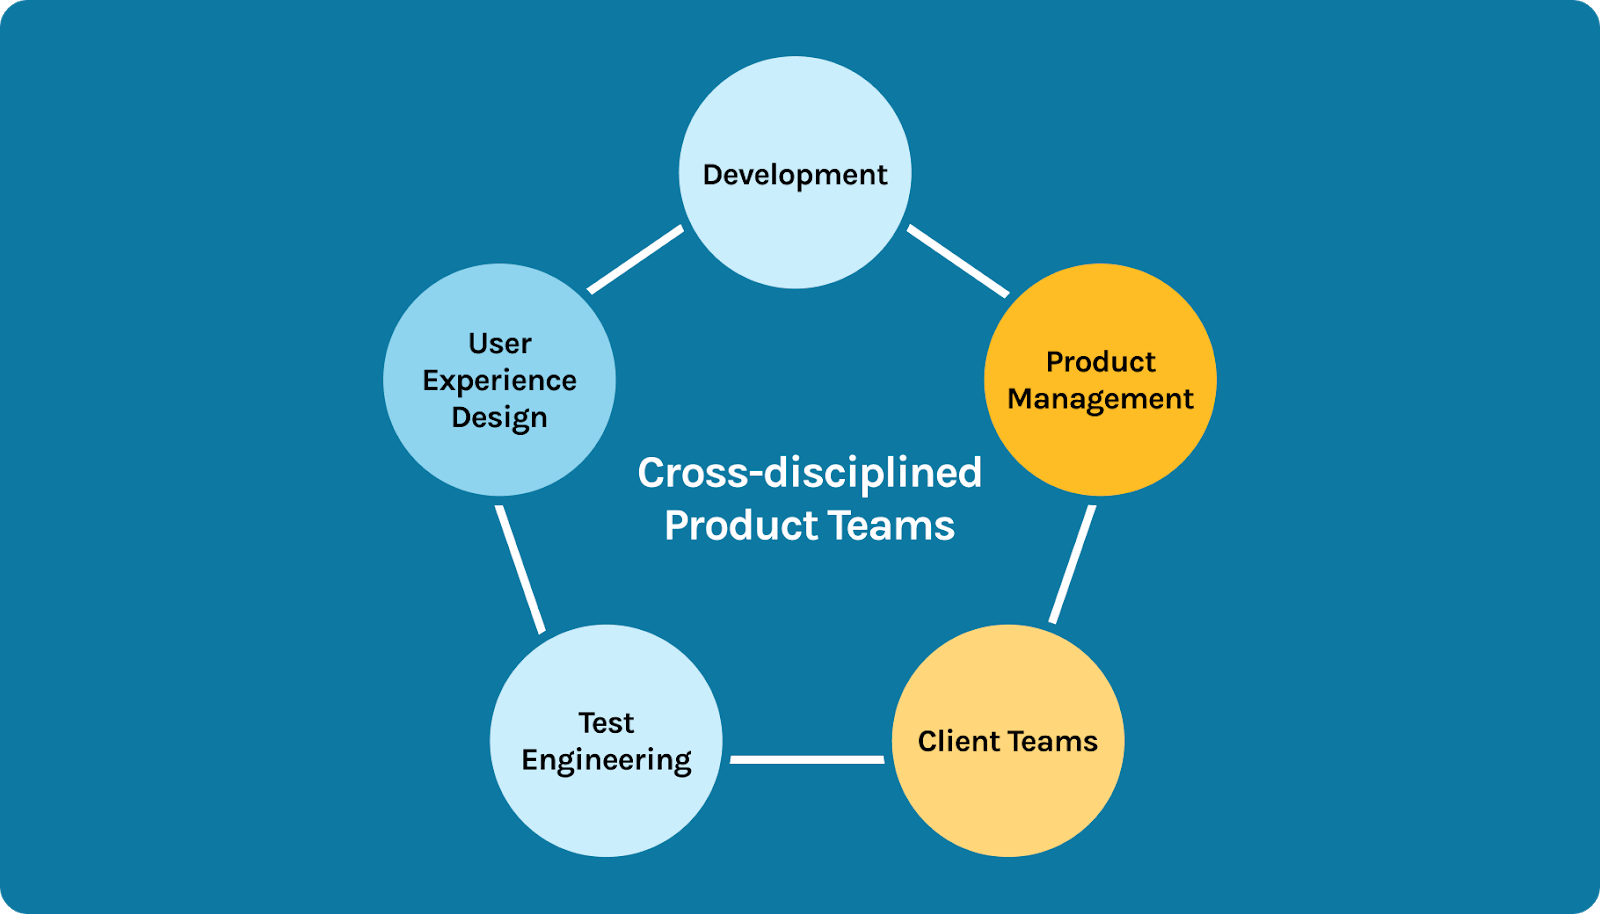 Graphic displaying the 5 pillars of cross-disciplined product teams